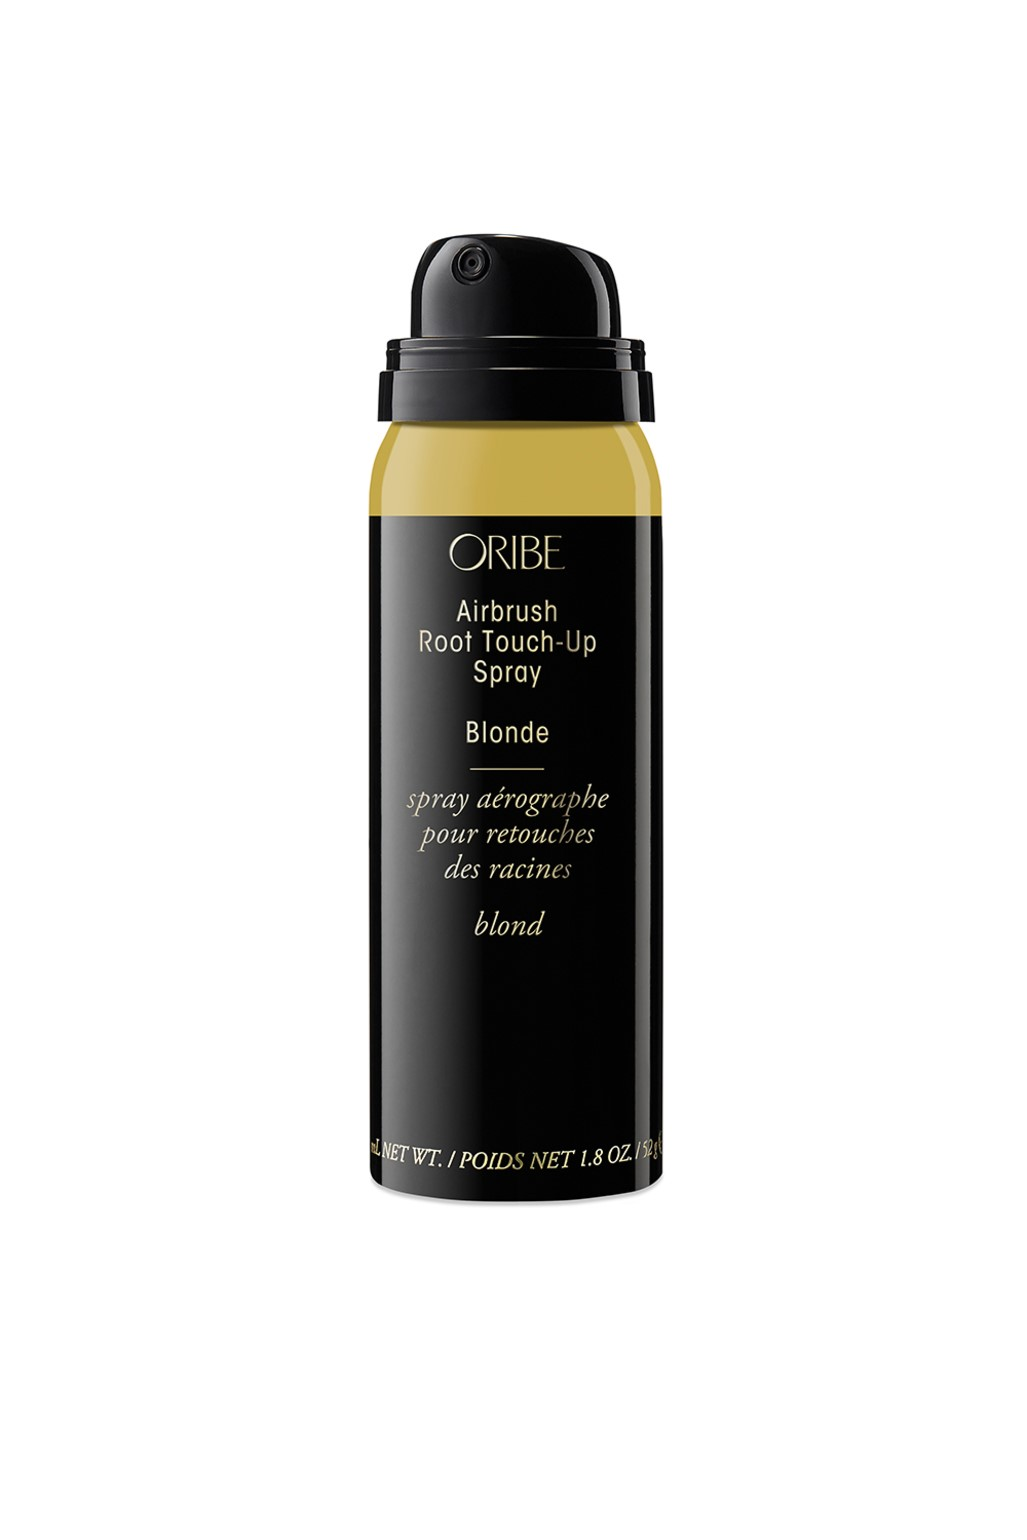 Airbrush Root Touch-Up Spray – Blonde